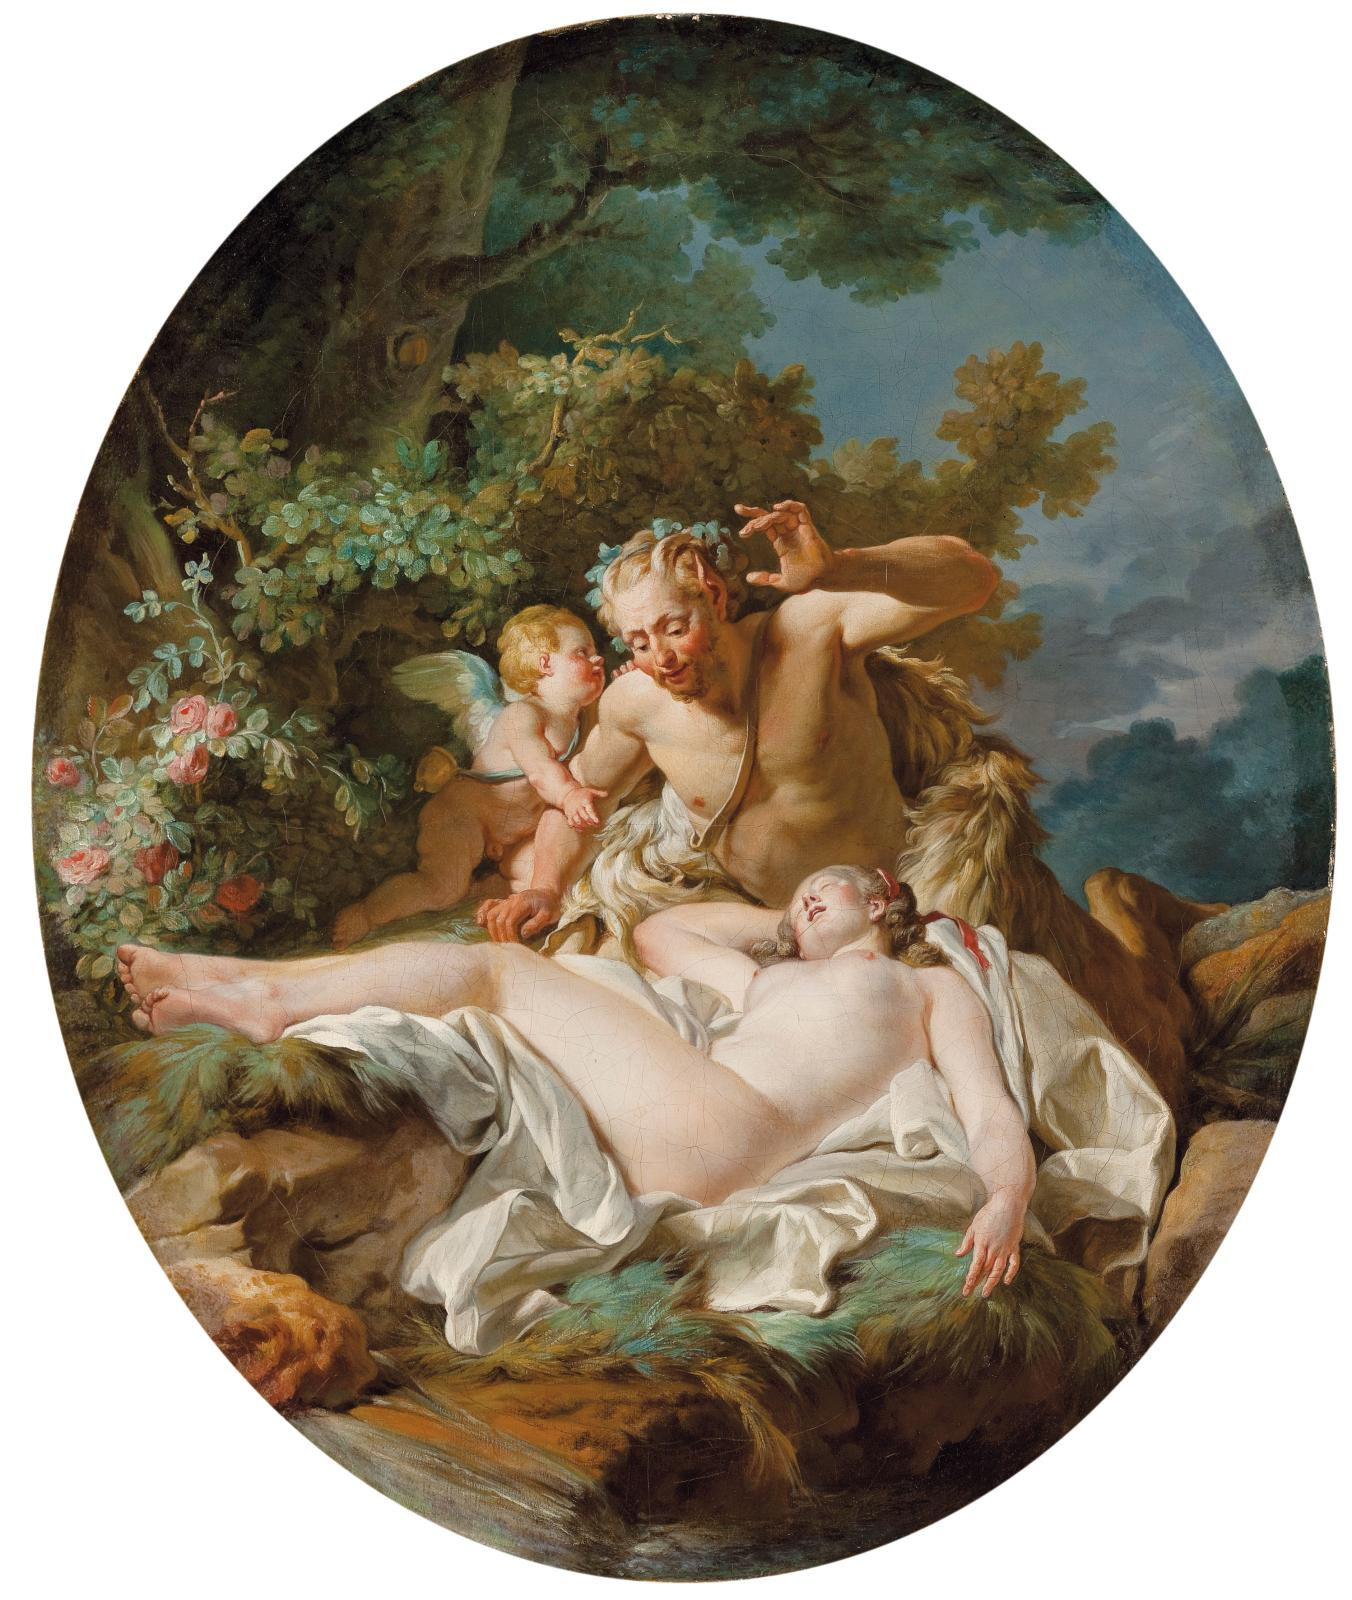 Satyre surprenant une nymphe ou Jupiter et Antiope, vers 1767-1768, huile sur toile, 66,6x55,2cm. Los Angeles, The Lynda and Stewart Resnick Collec